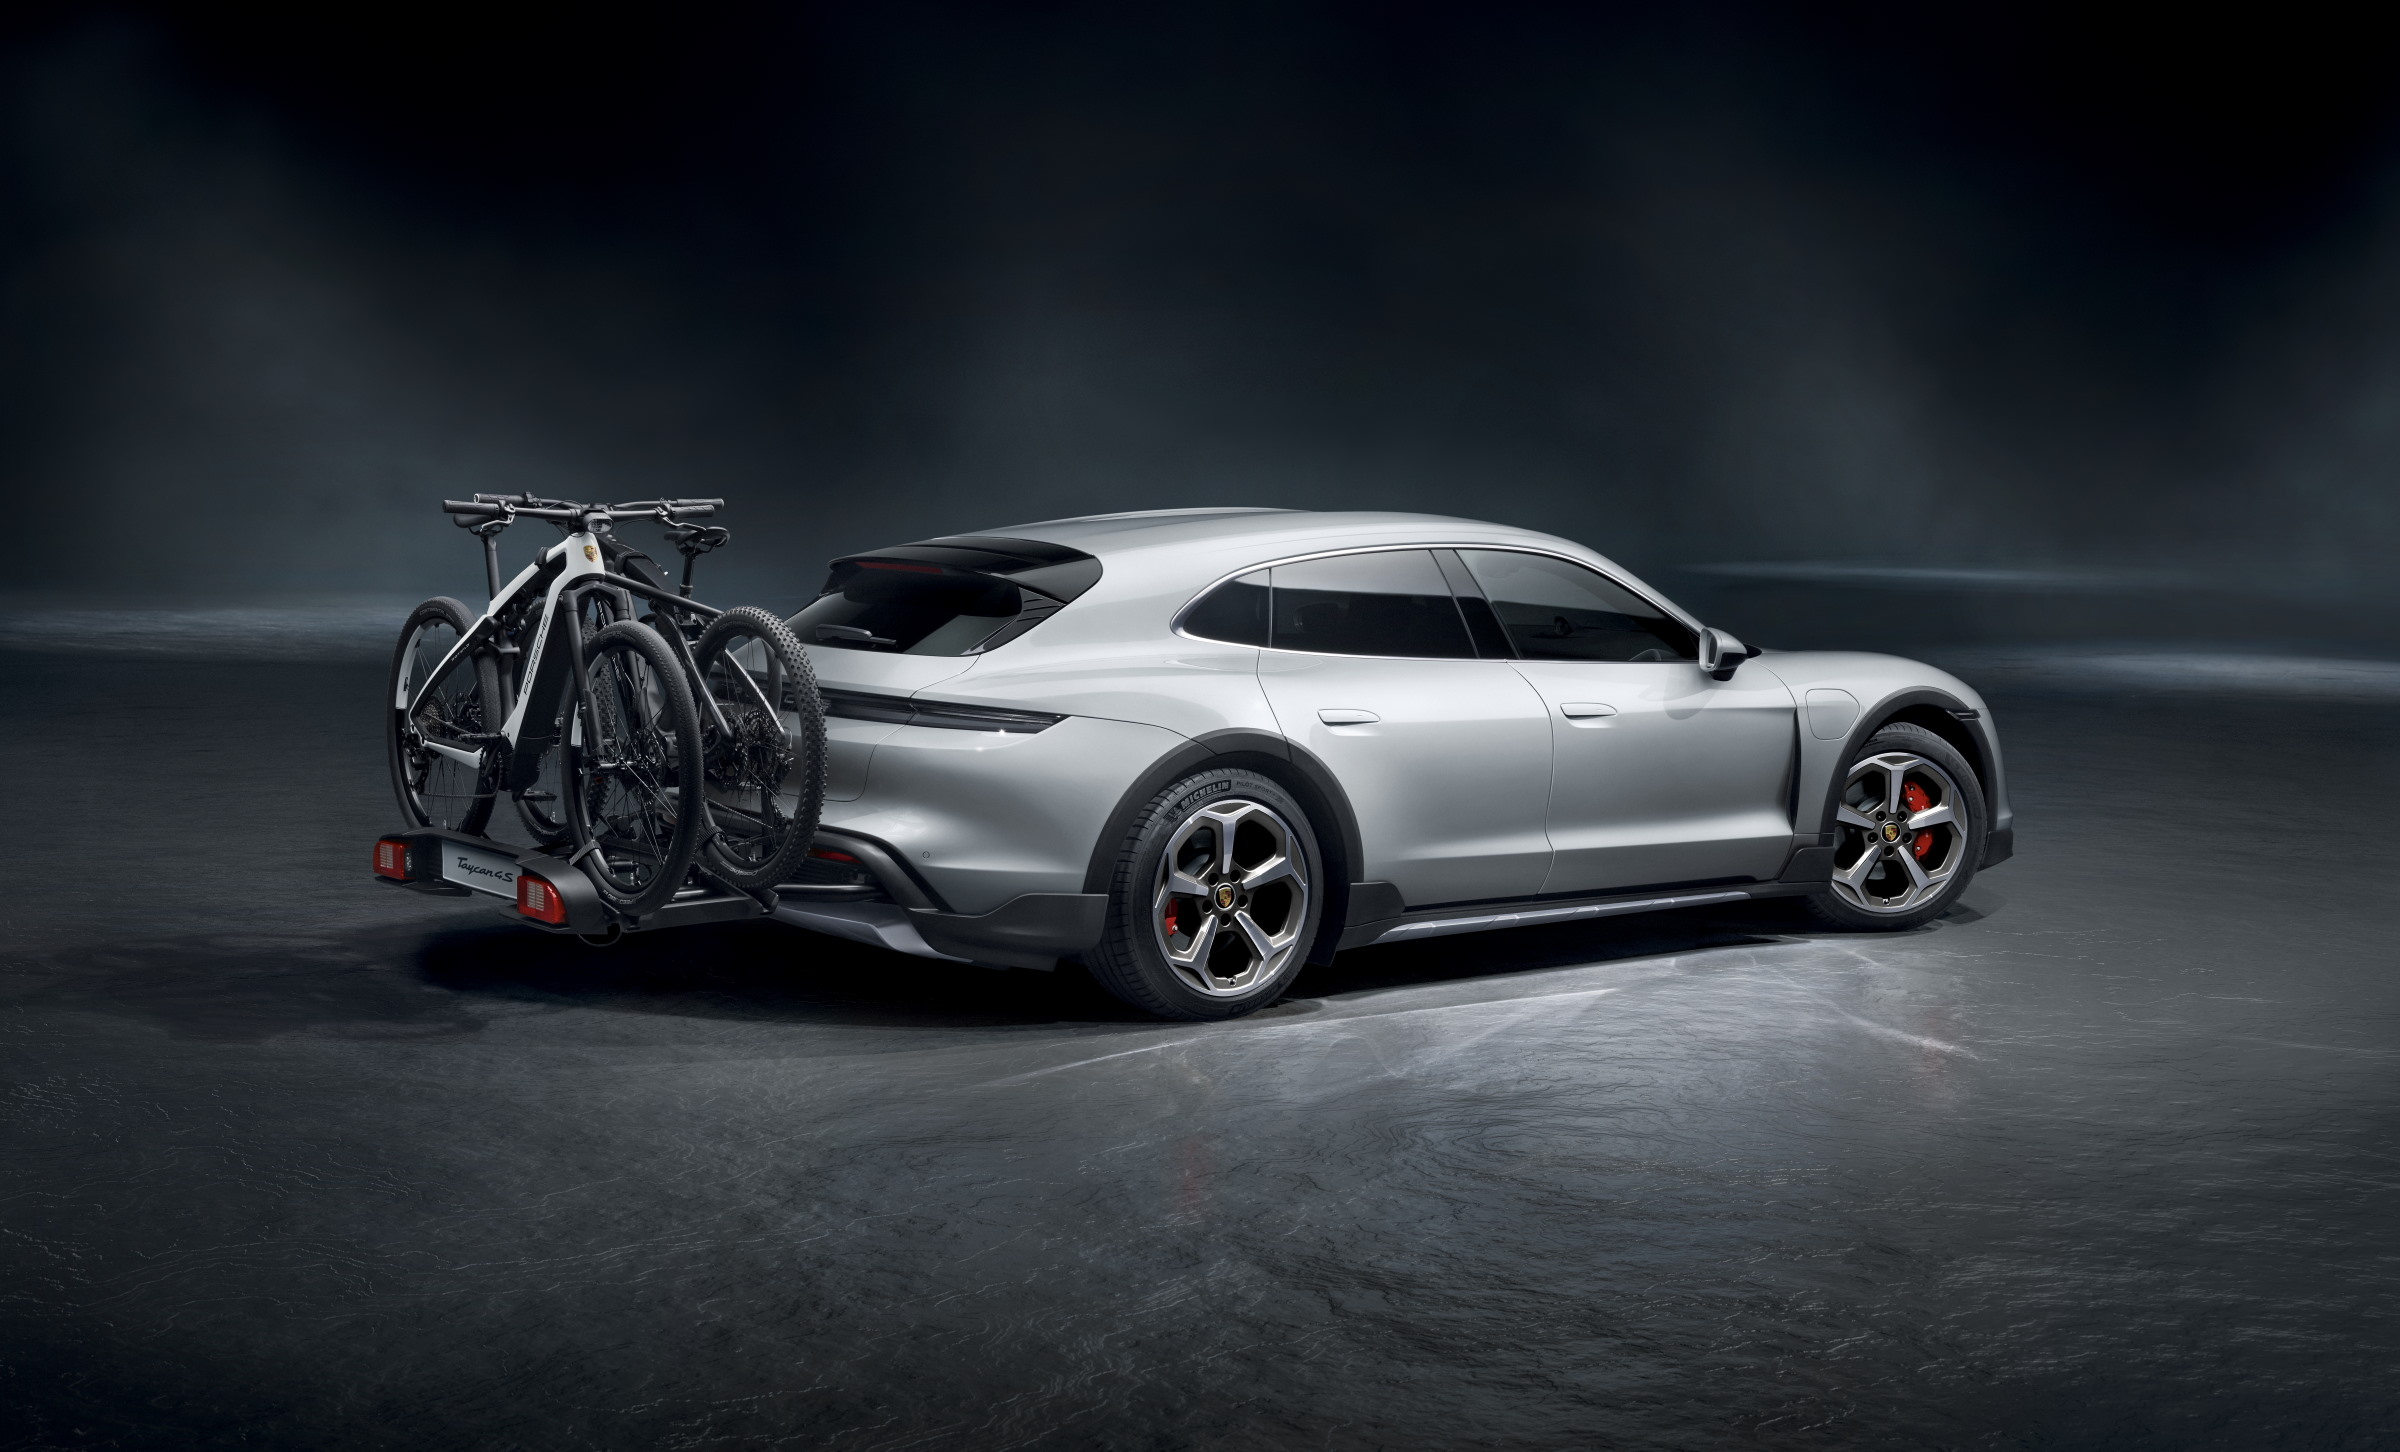 The Porsche Taycan 4S Cross Turismo Is Suited For Dominating Any Road You're On